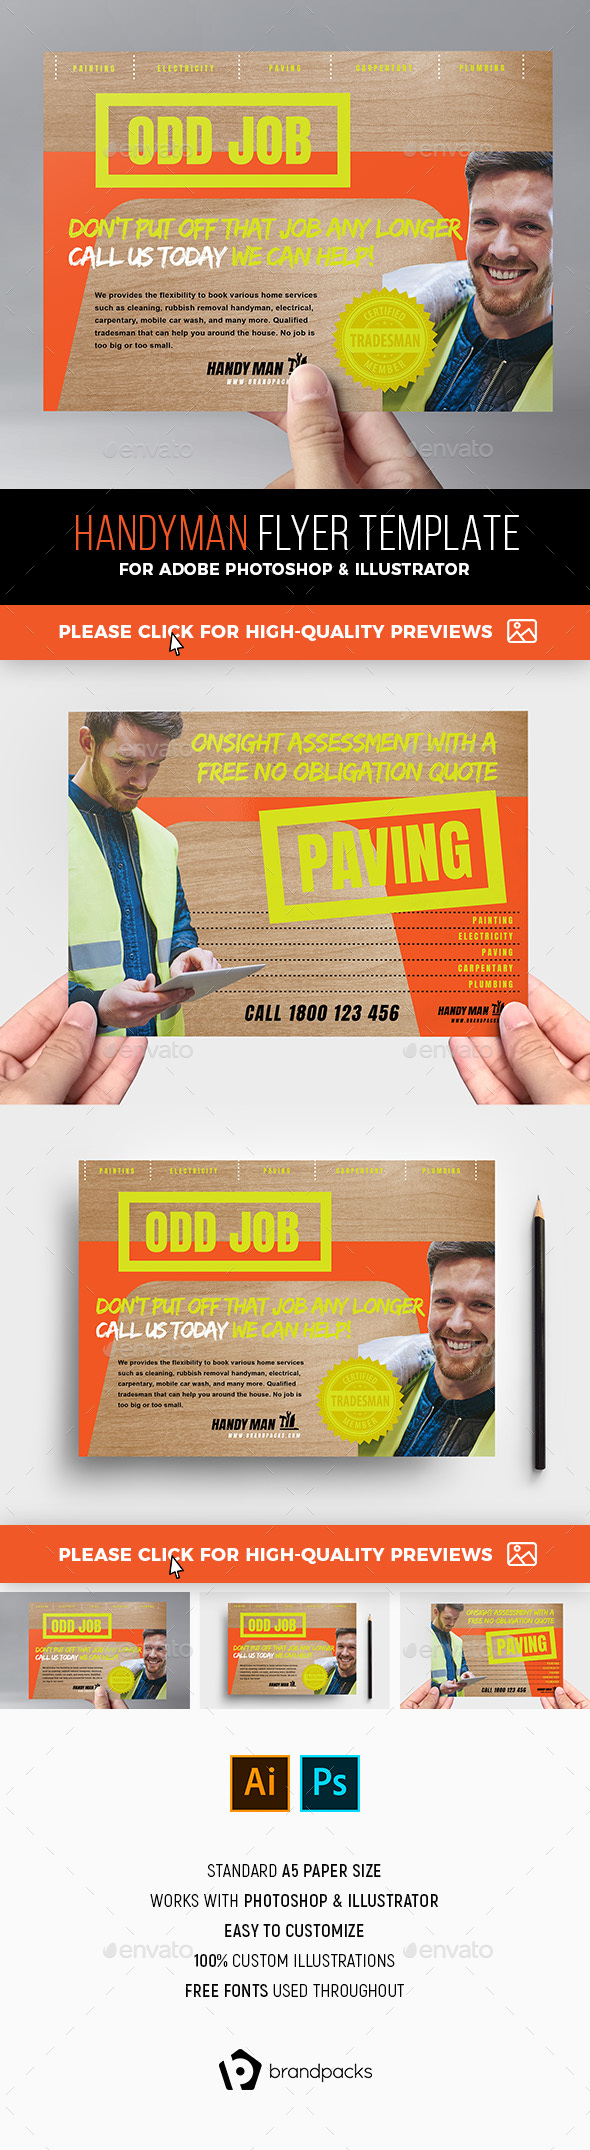 Handyman Flyer - Commerce Flyers